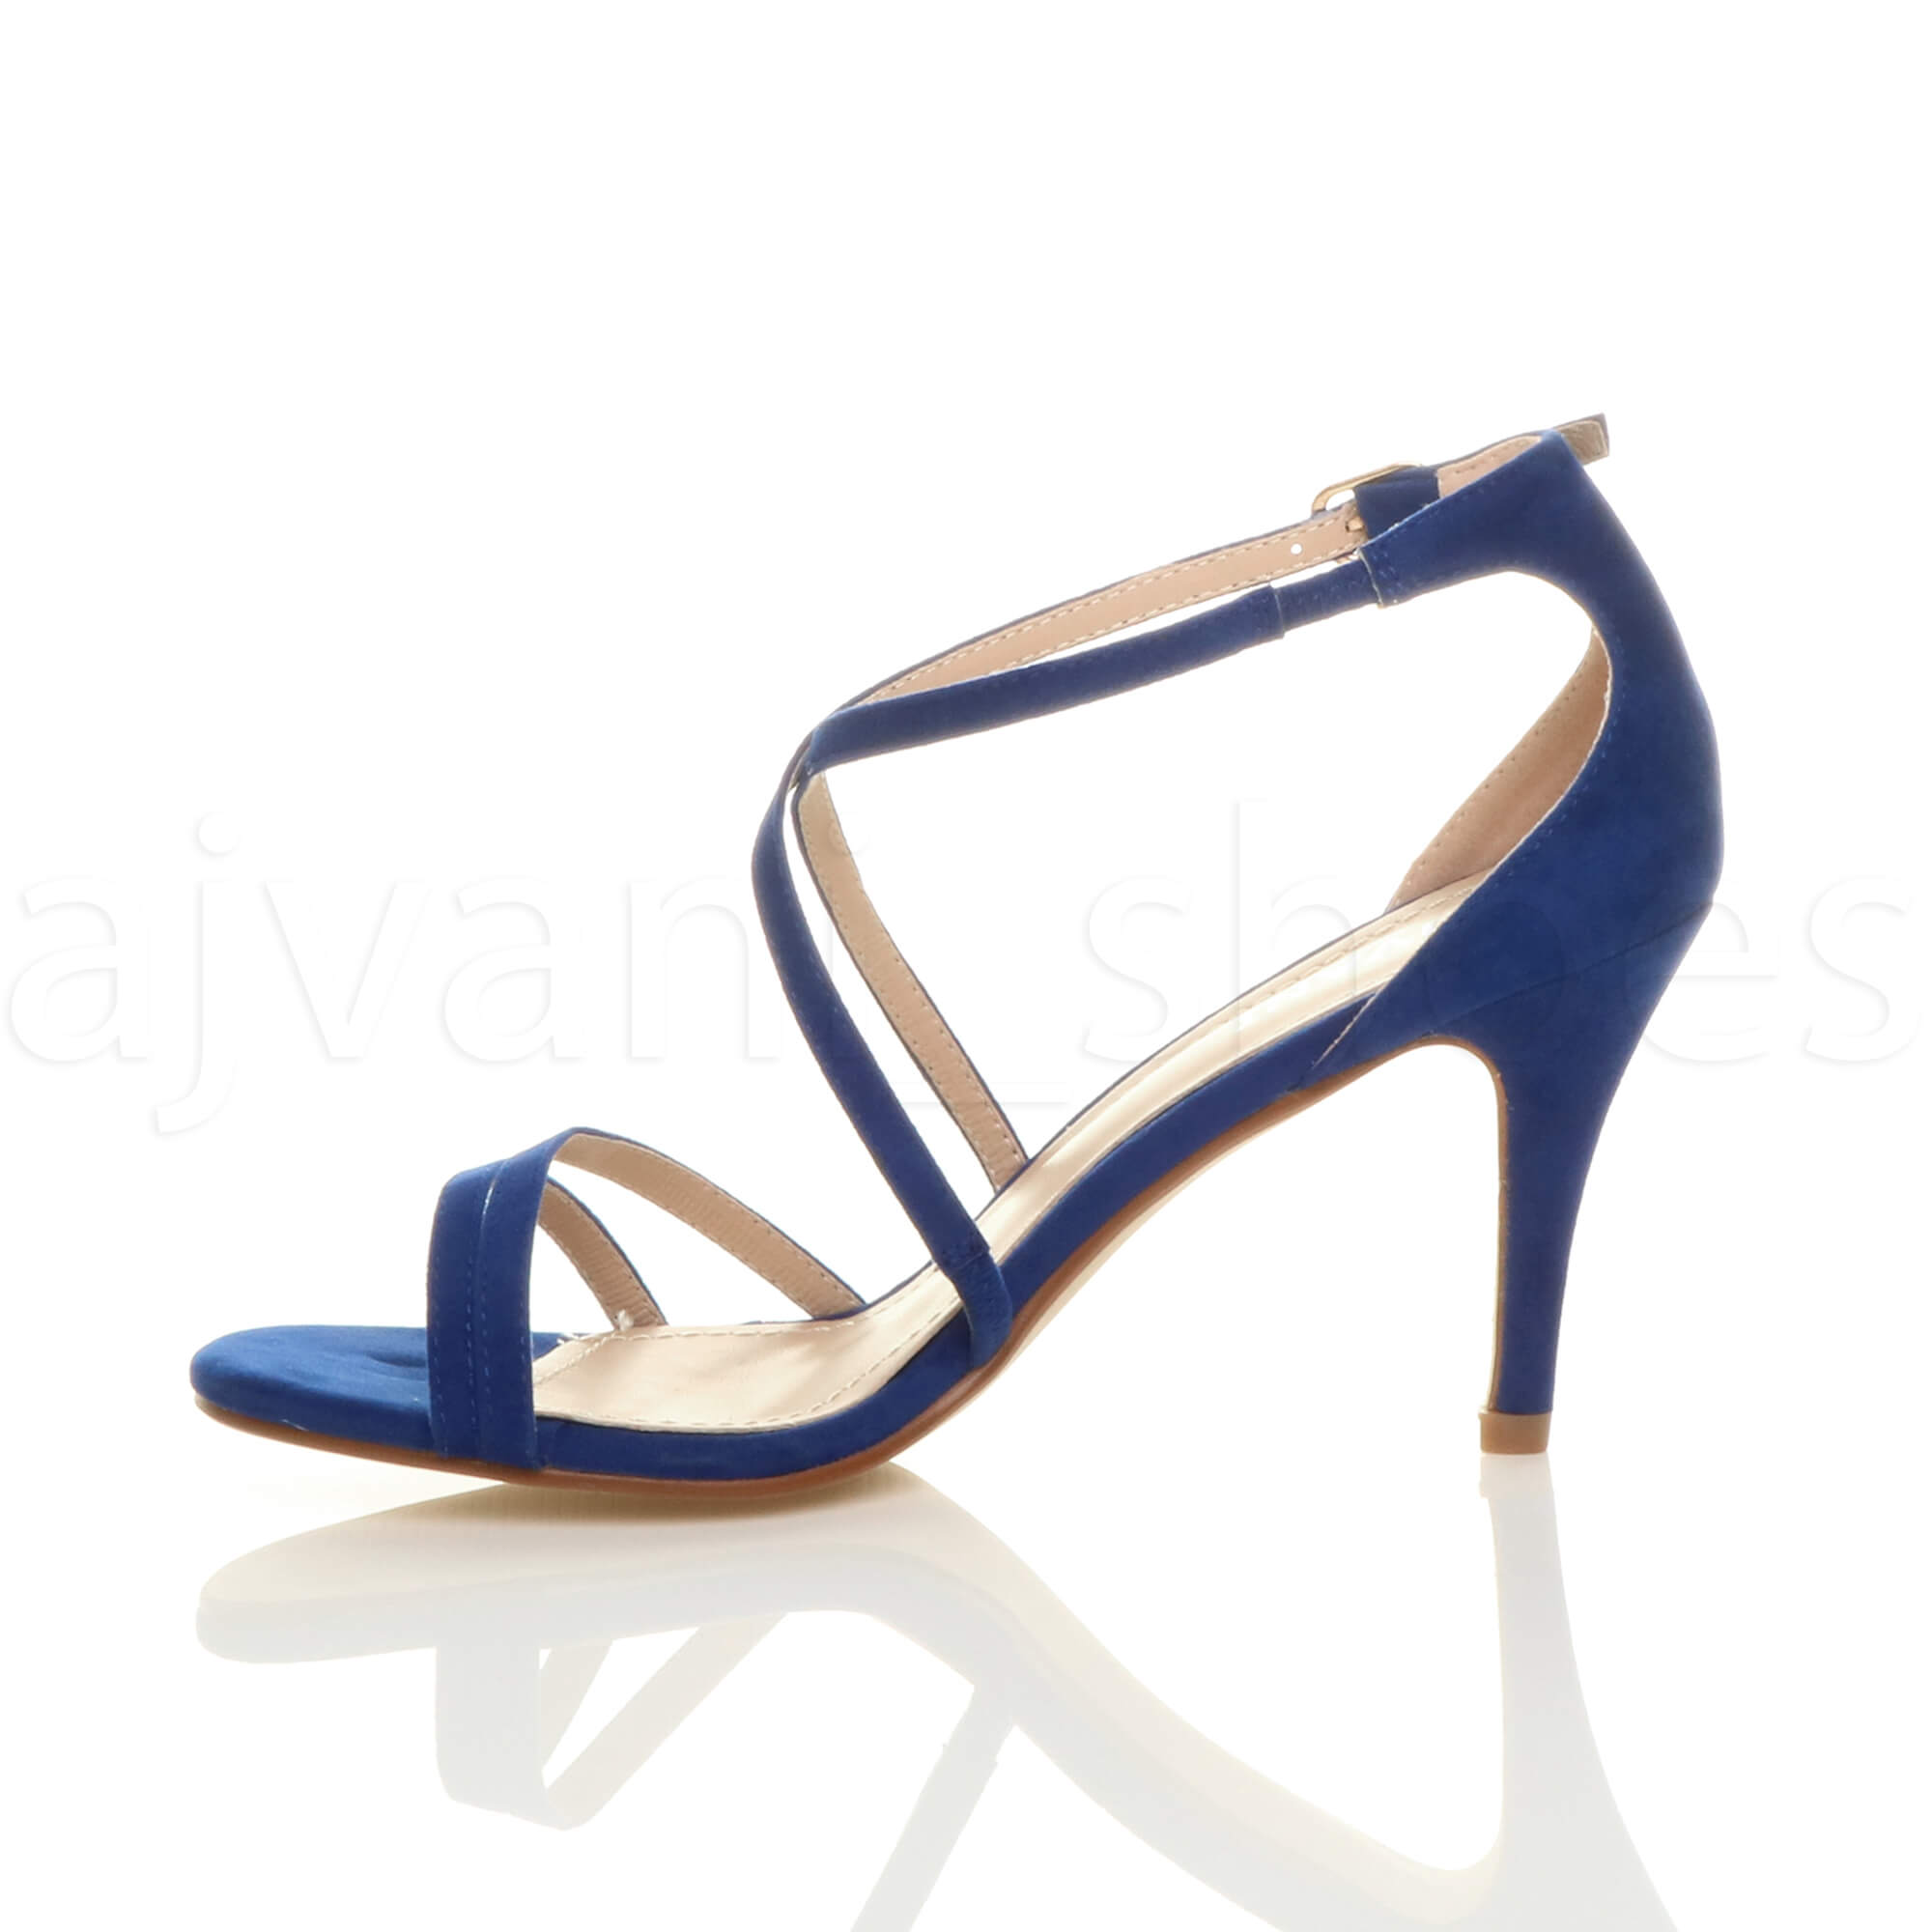 WOMENS-LADIES-MID-HIGH-HEEL-STRAPPY-CROSSOVER-WEDDING-PROM-SANDALS-SHOES-SIZE thumbnail 32